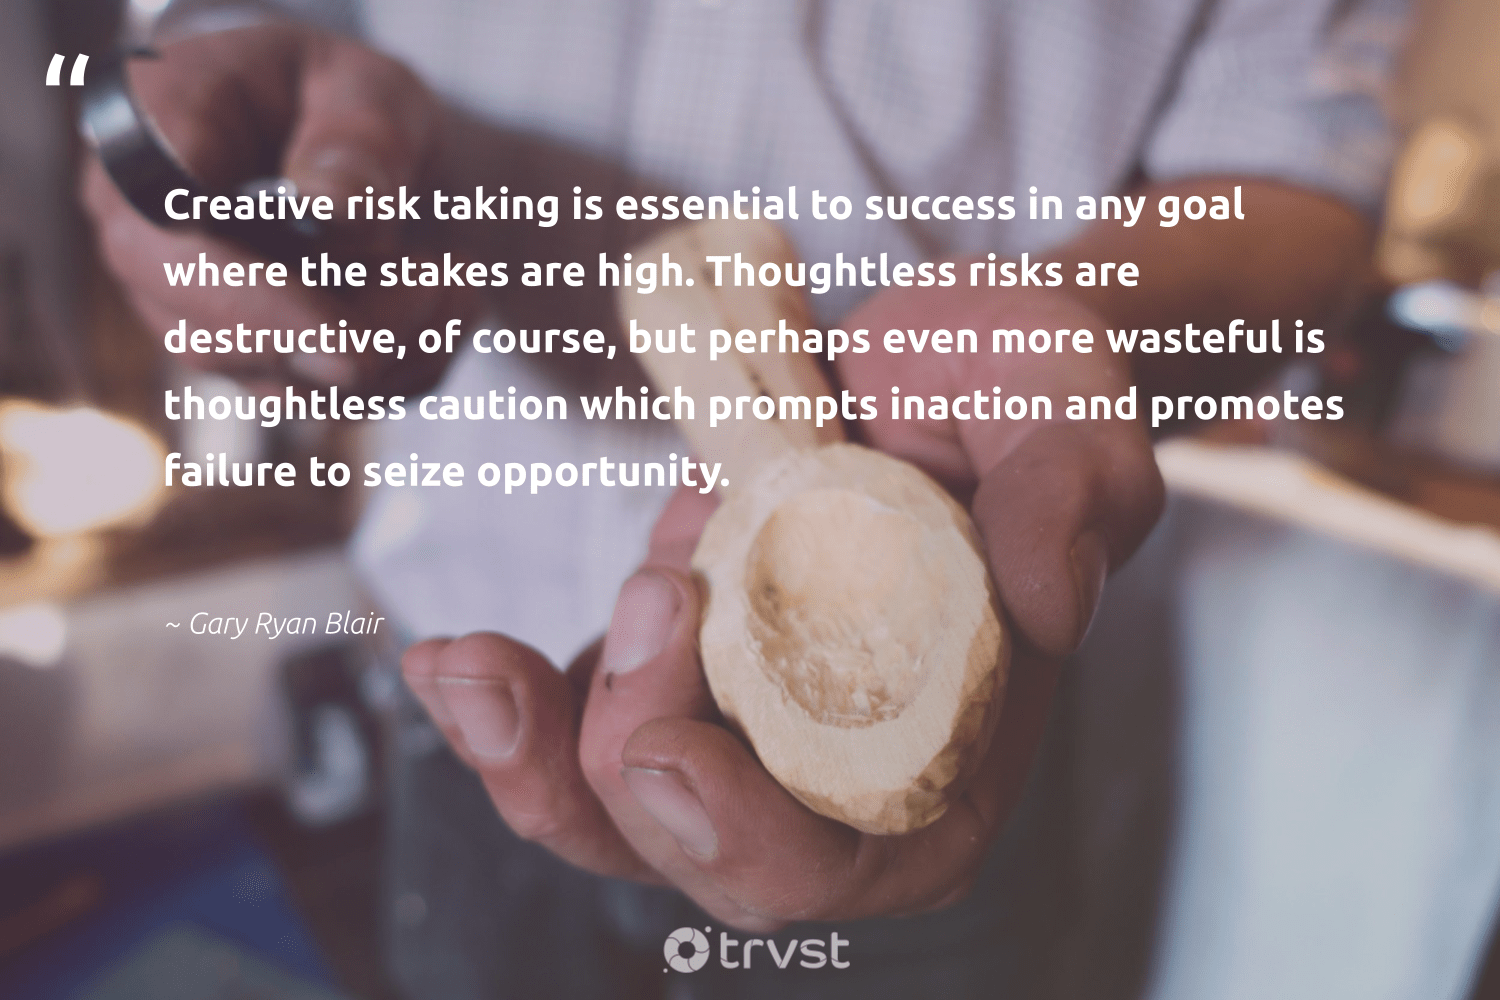 """Creative risk taking is essential to success in any goal where the stakes are high. Thoughtless risks are destructive, of course, but perhaps even more wasteful is thoughtless caution which prompts inaction and promotes failure to seize opportunity.""  - Gary Ryan Blair #trvst #quotes #productivity #success #creative #mostwontiwill #begreat #futureofwork #bethechange #timemanagement #softskills #nevergiveup"